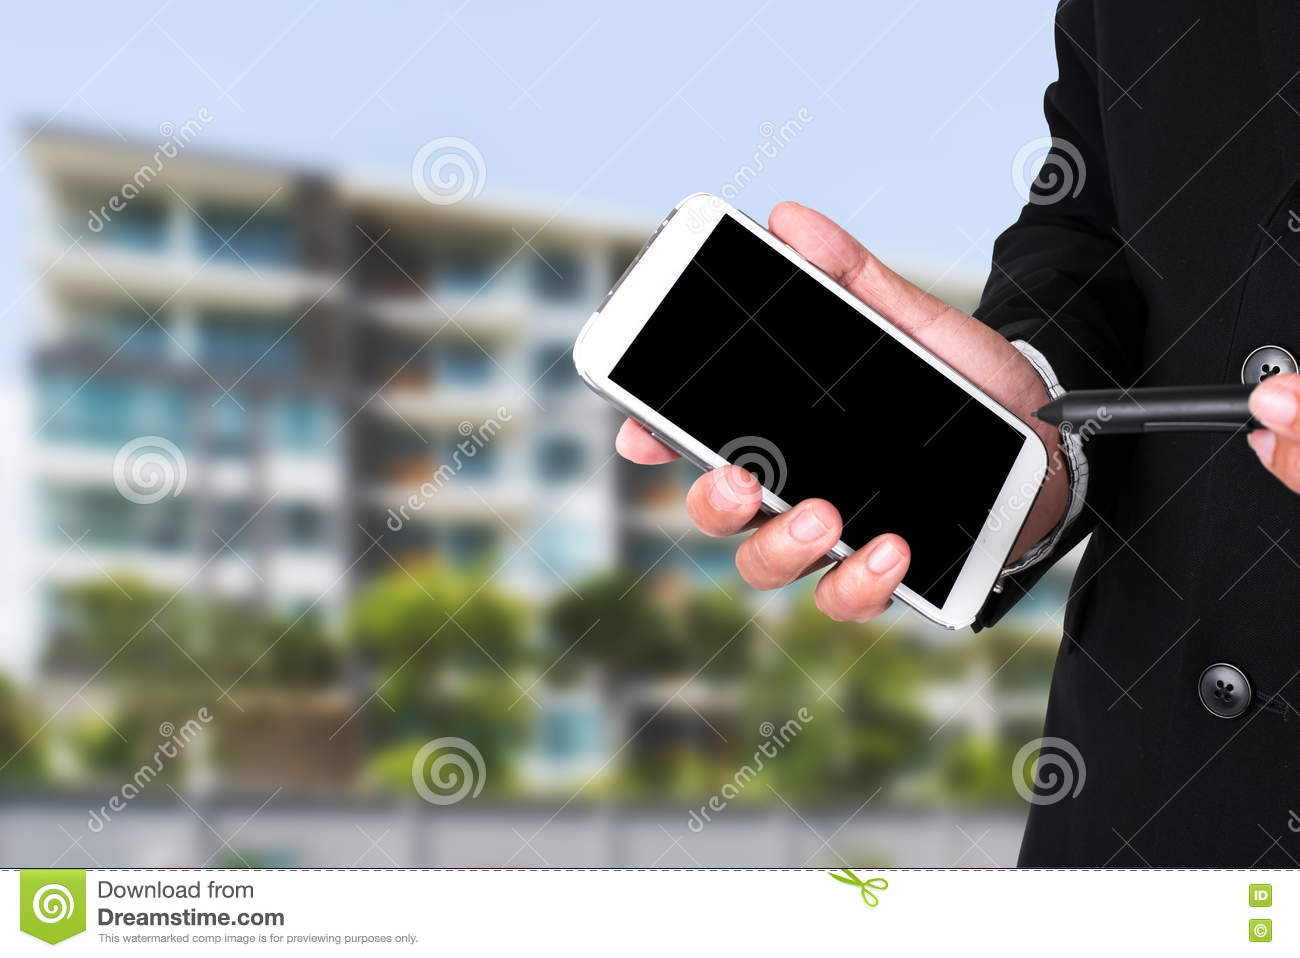 How to find out the owner of the phone number